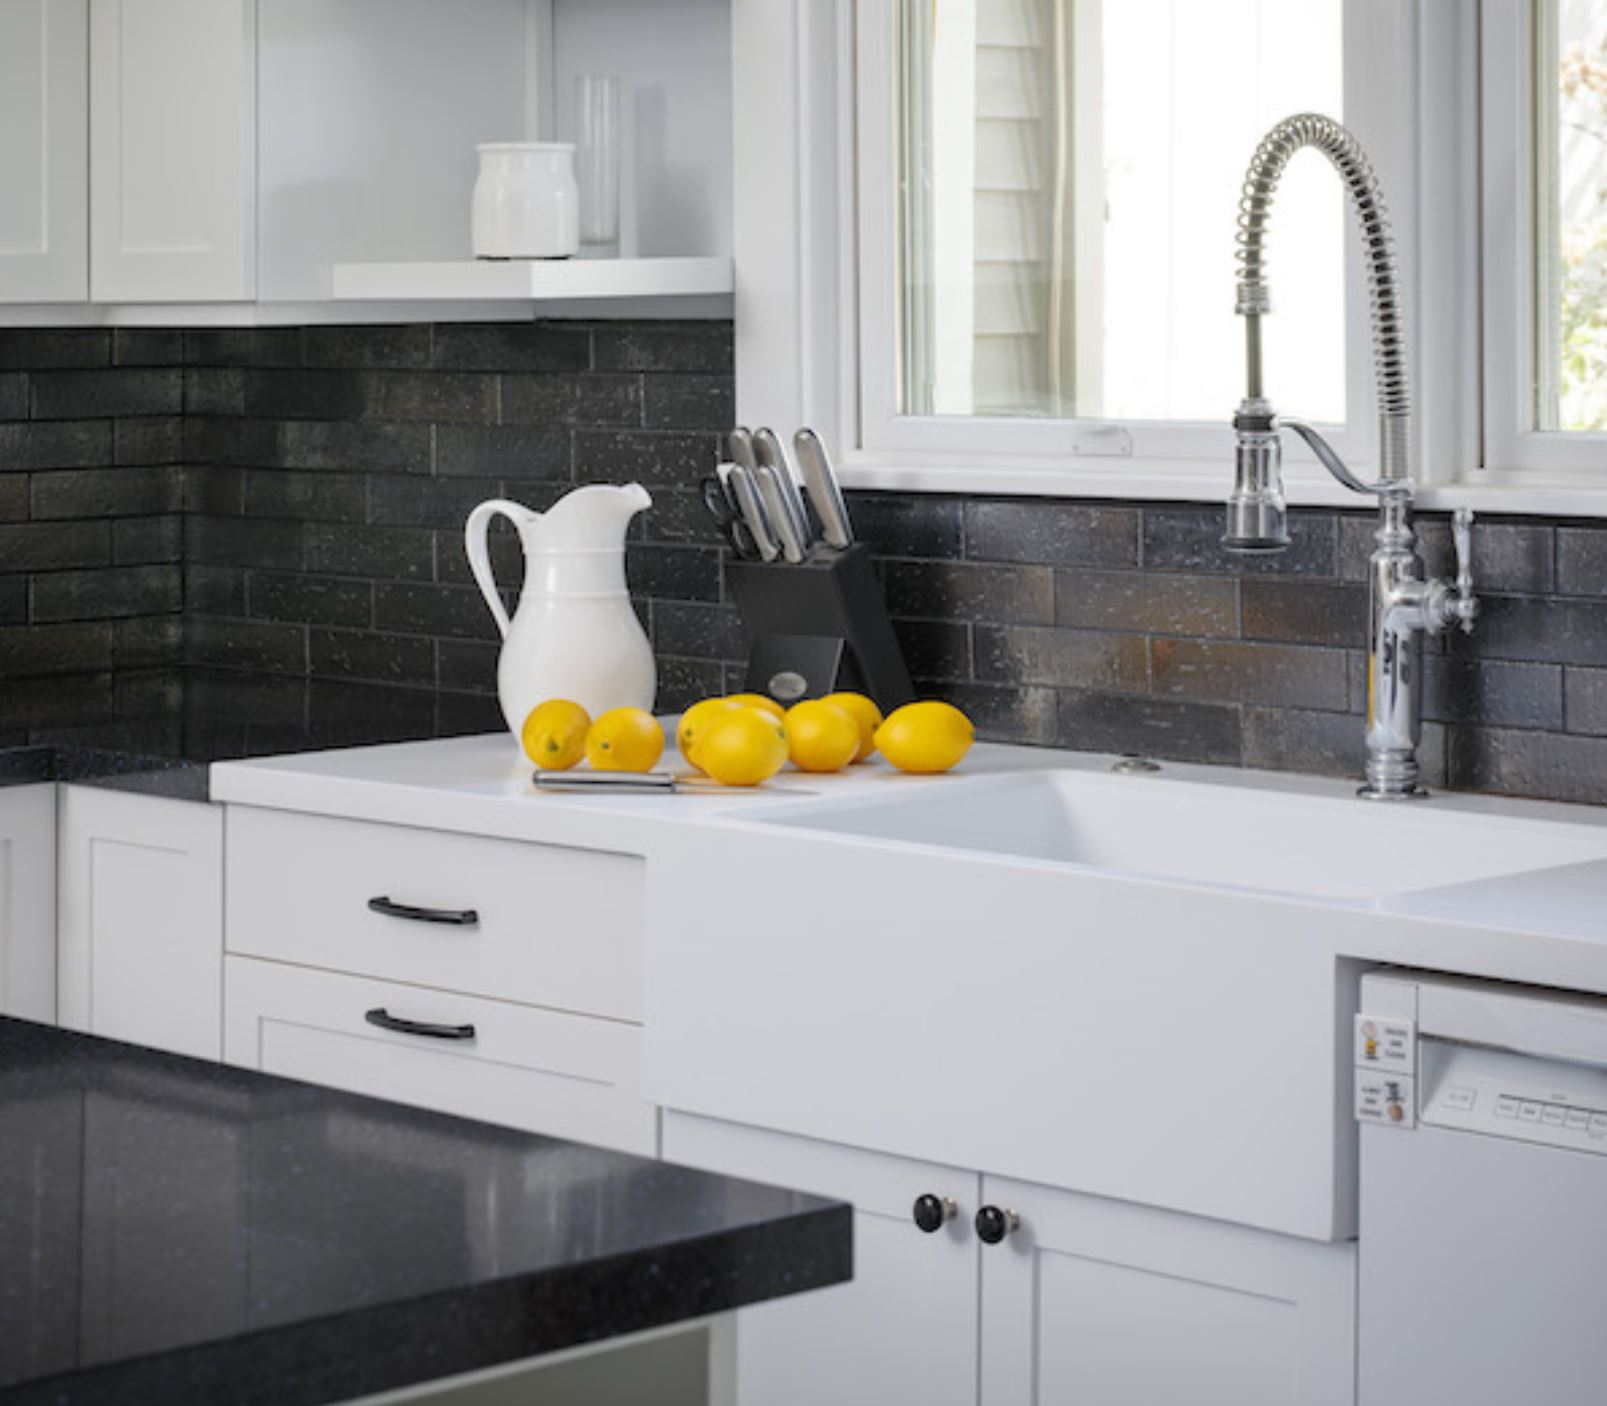 Realtor Magazine 2021 03 15 Ten Kitchen Changes sought out by buyers in 2021 since the begining of the plandemic after going through the COVID-19 Coronavirus pandemic Hoey Team exp Realty 03